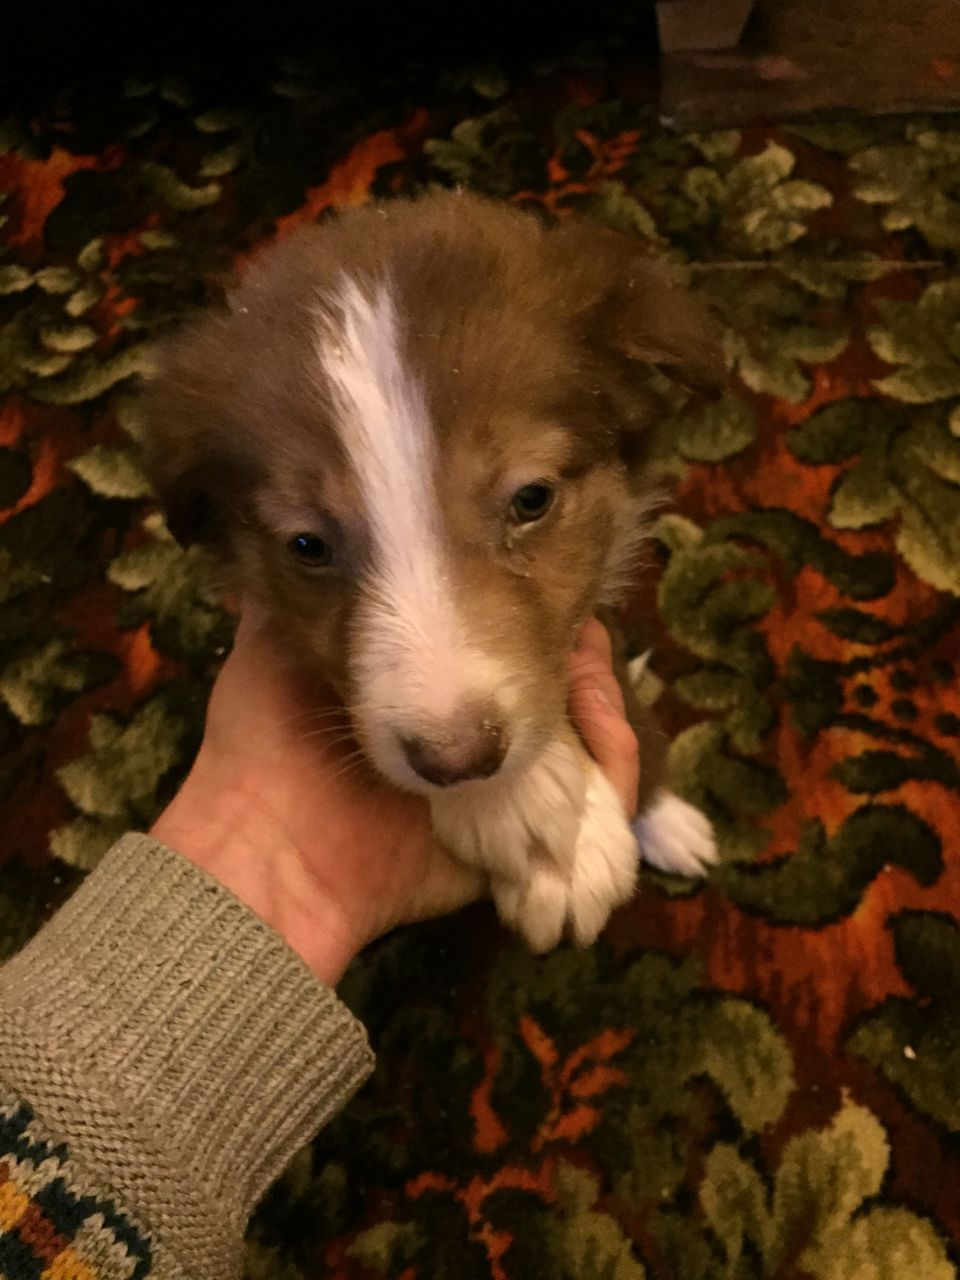 Border Collie Pups Red Pups Also Black White And Tan Ready To Go Chipped And Wormed Parents Can Be Seen Loving Homes Border Collie Puppies Border Collie Collie